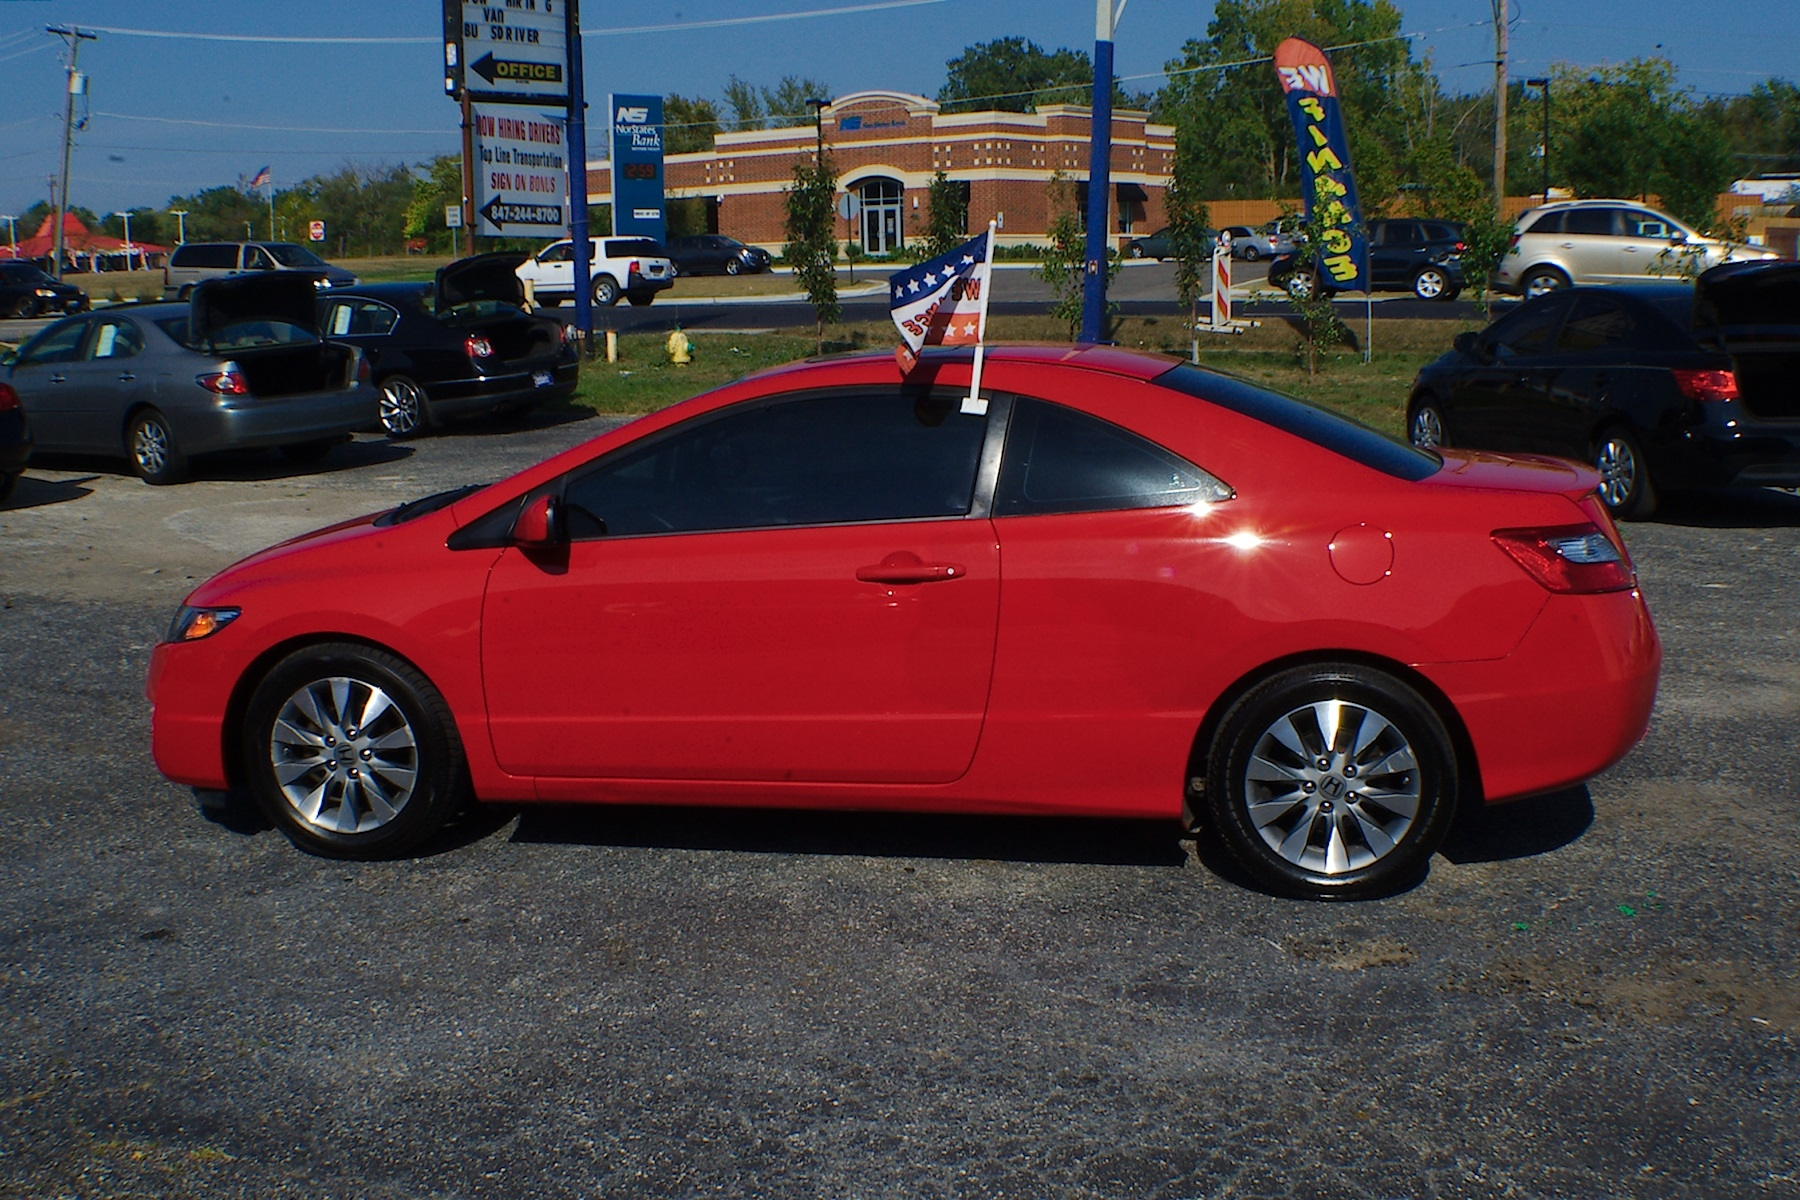 2011 Honda Civic Red Sport Coupe Used Car Sale Bannockburn Barrington Beach Park